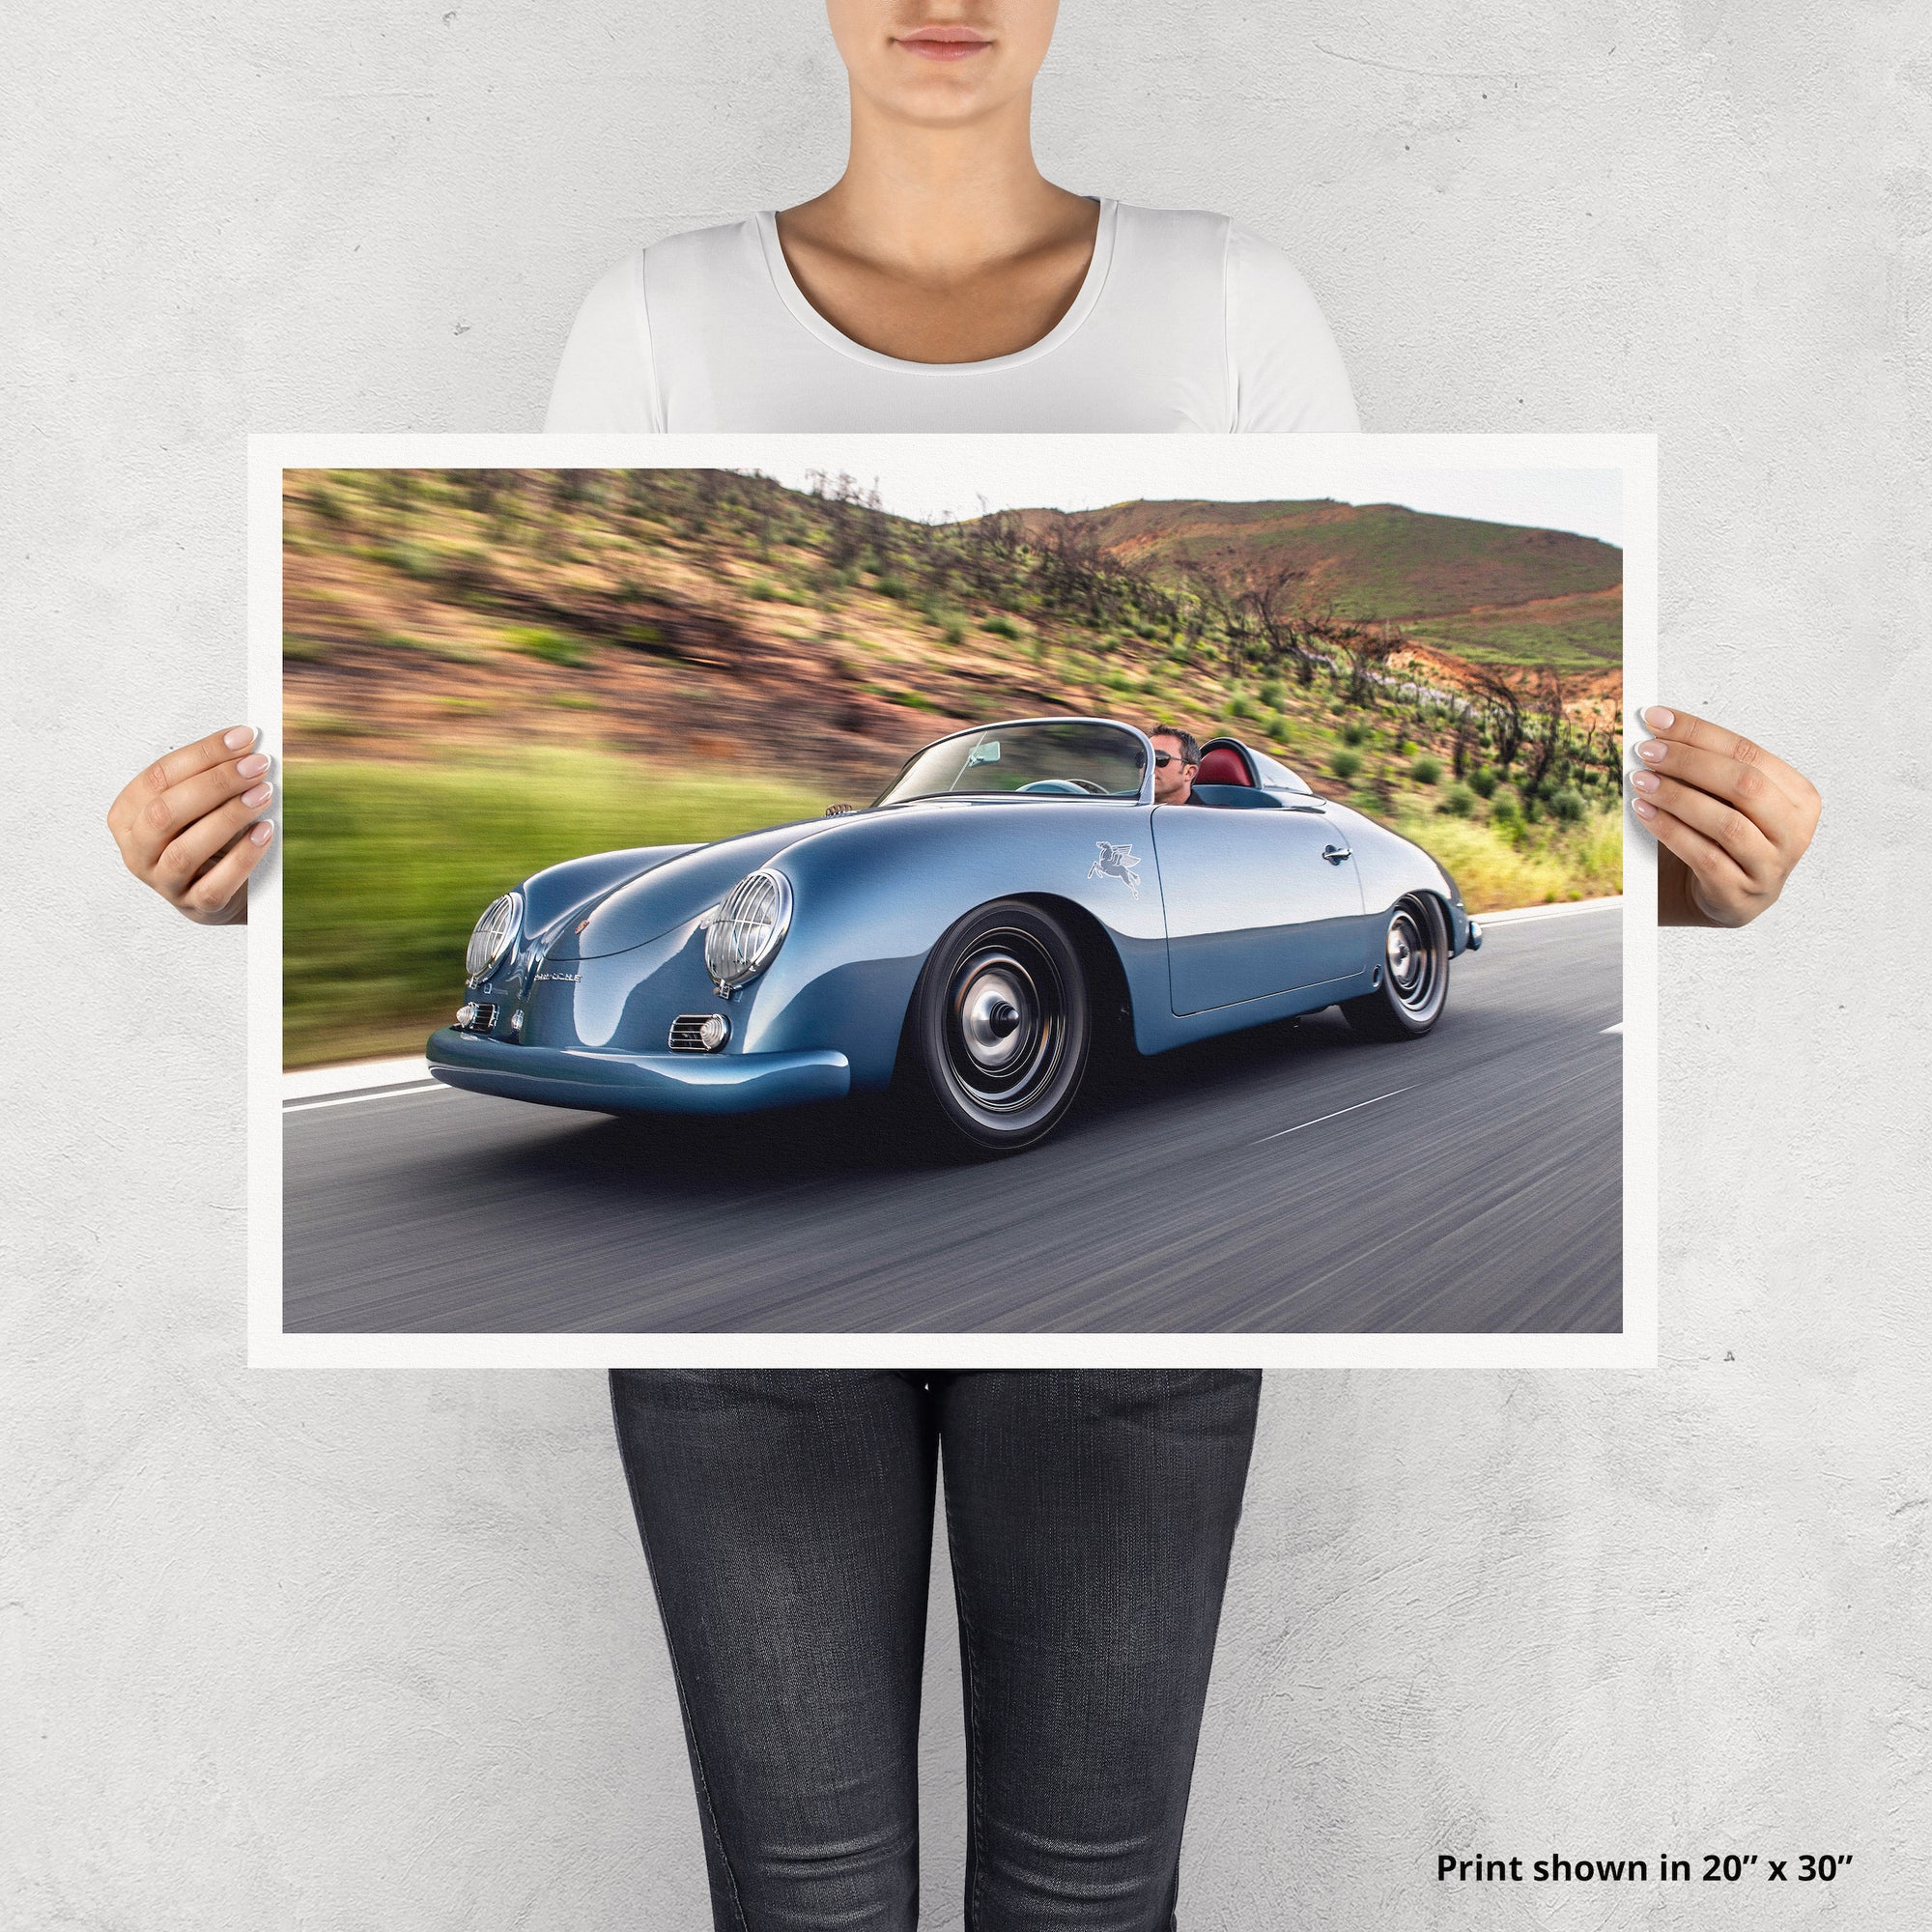 Emory Outlaw 1959 1/2 Transitional Speedster Fine Art Print - Lugcraft